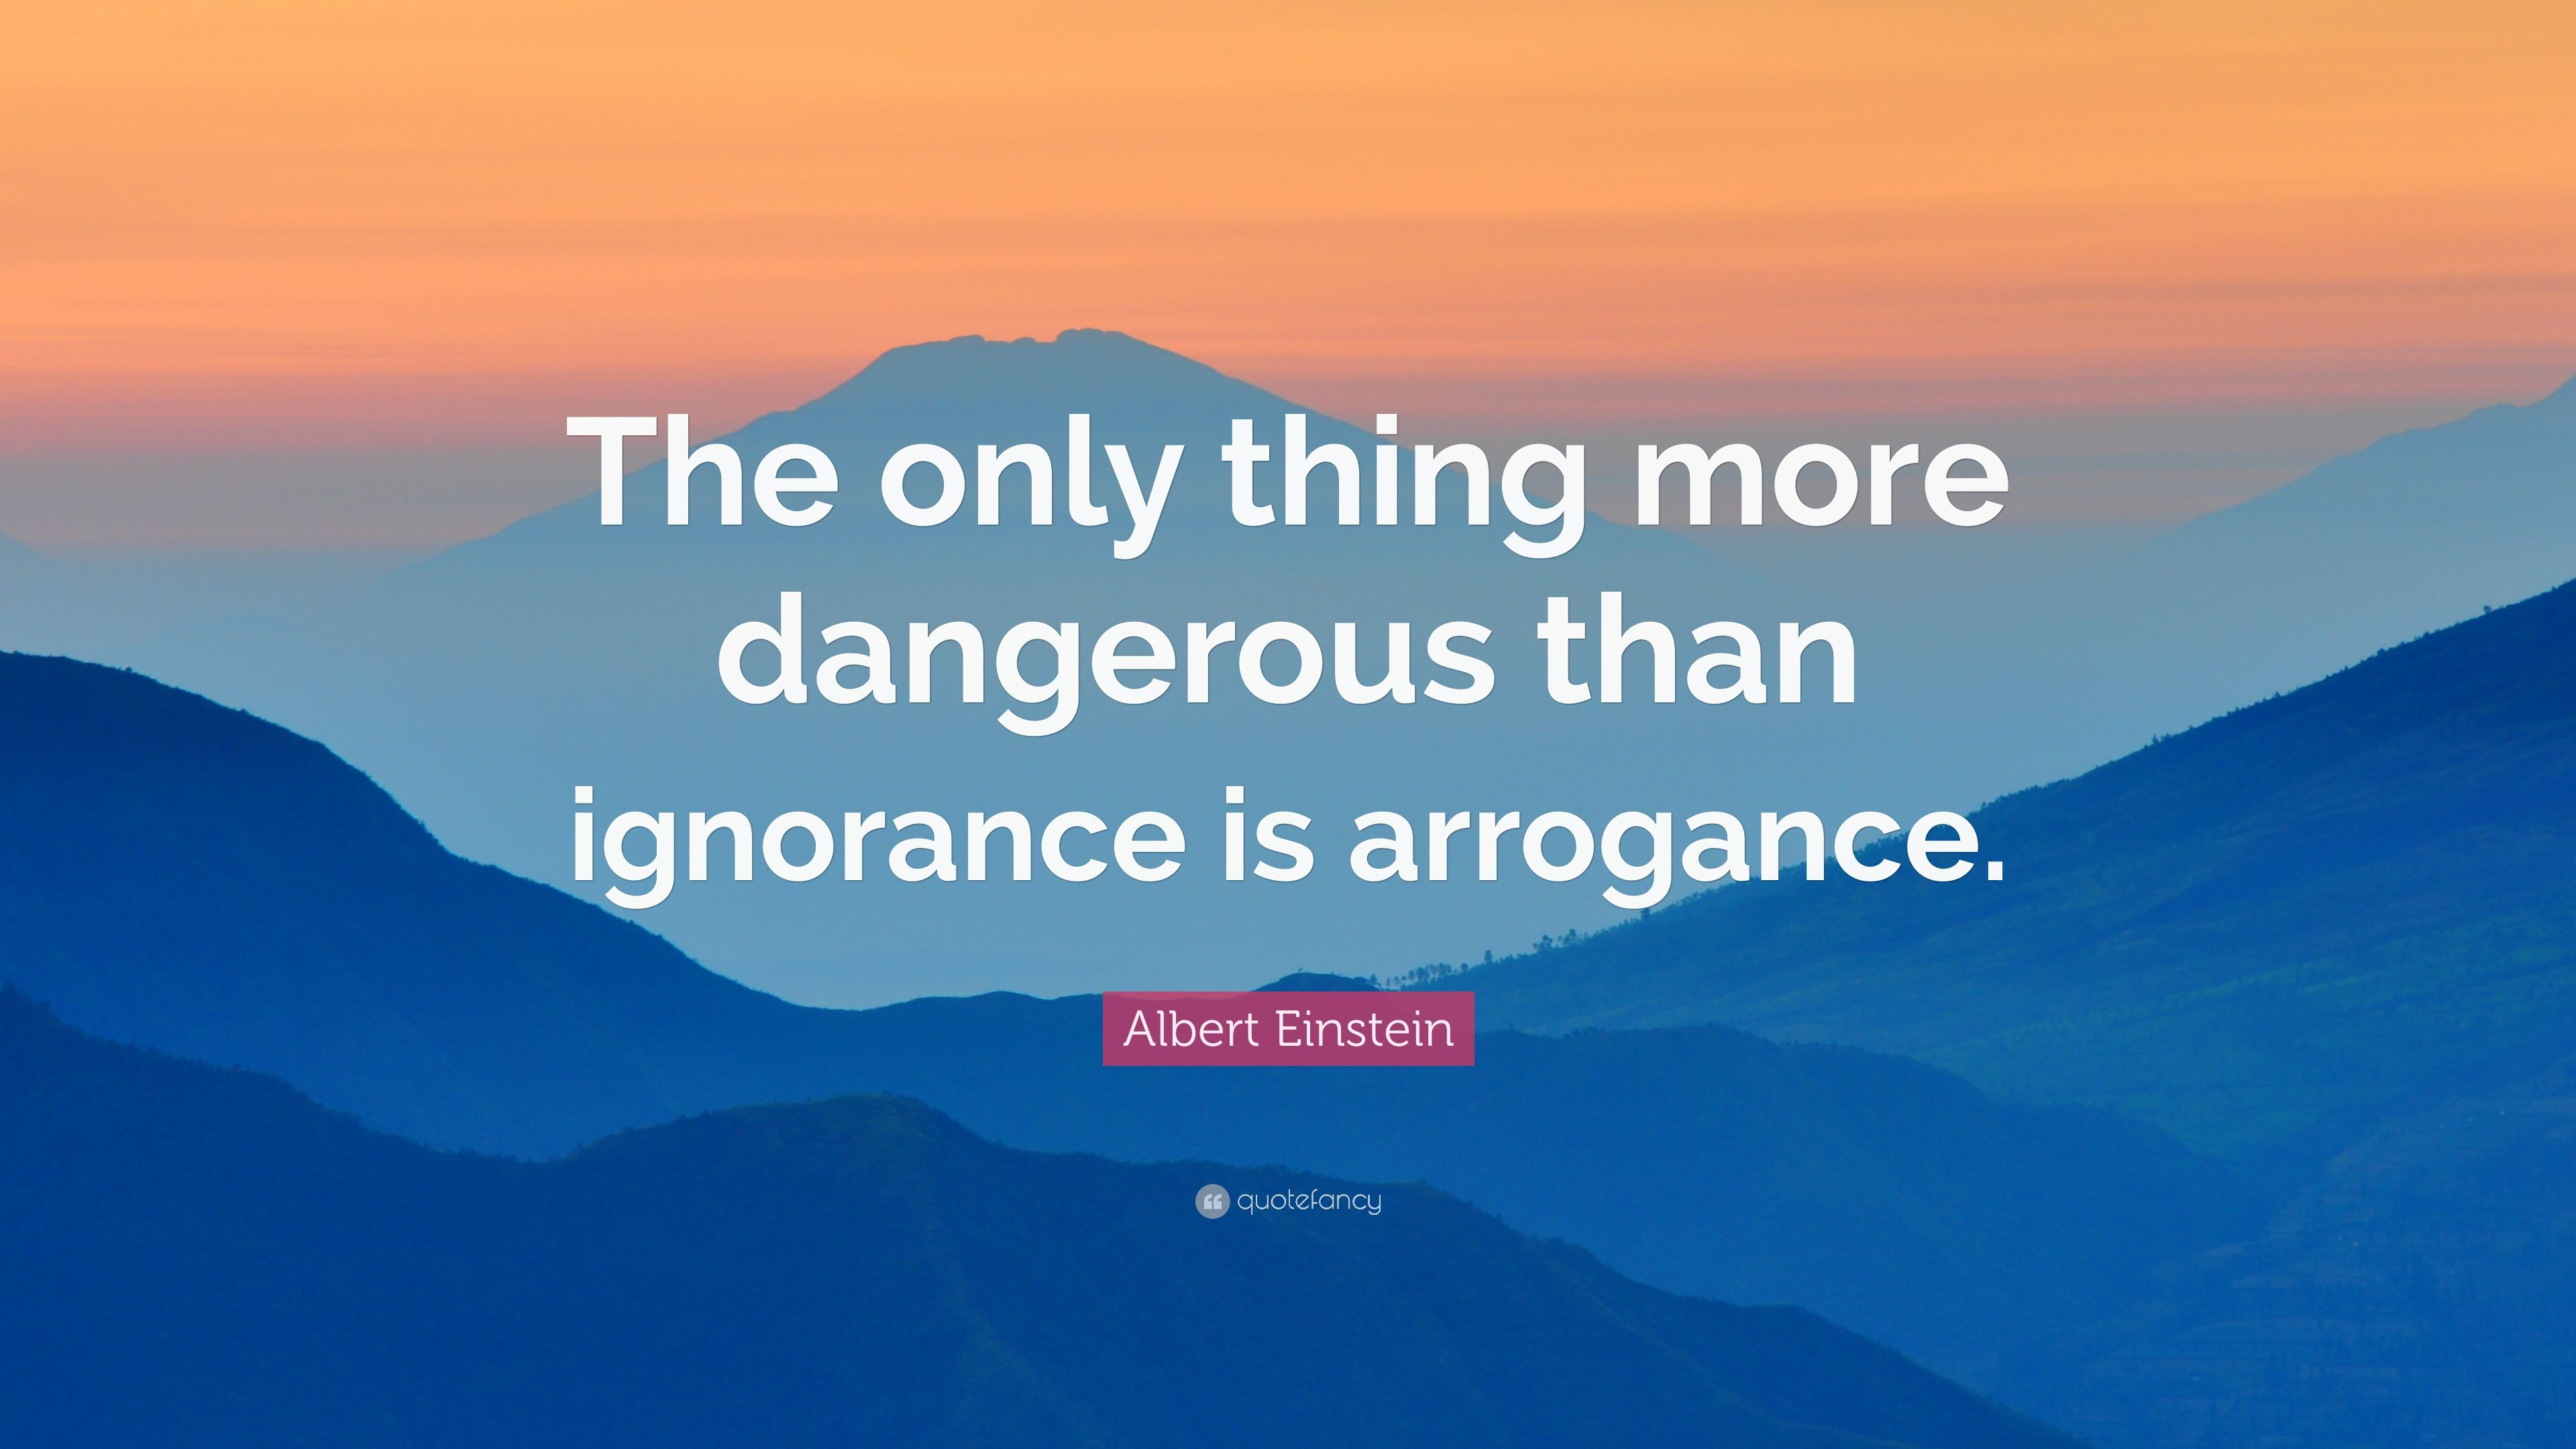 Albert Einstein Quote: The only thing more dangerous than